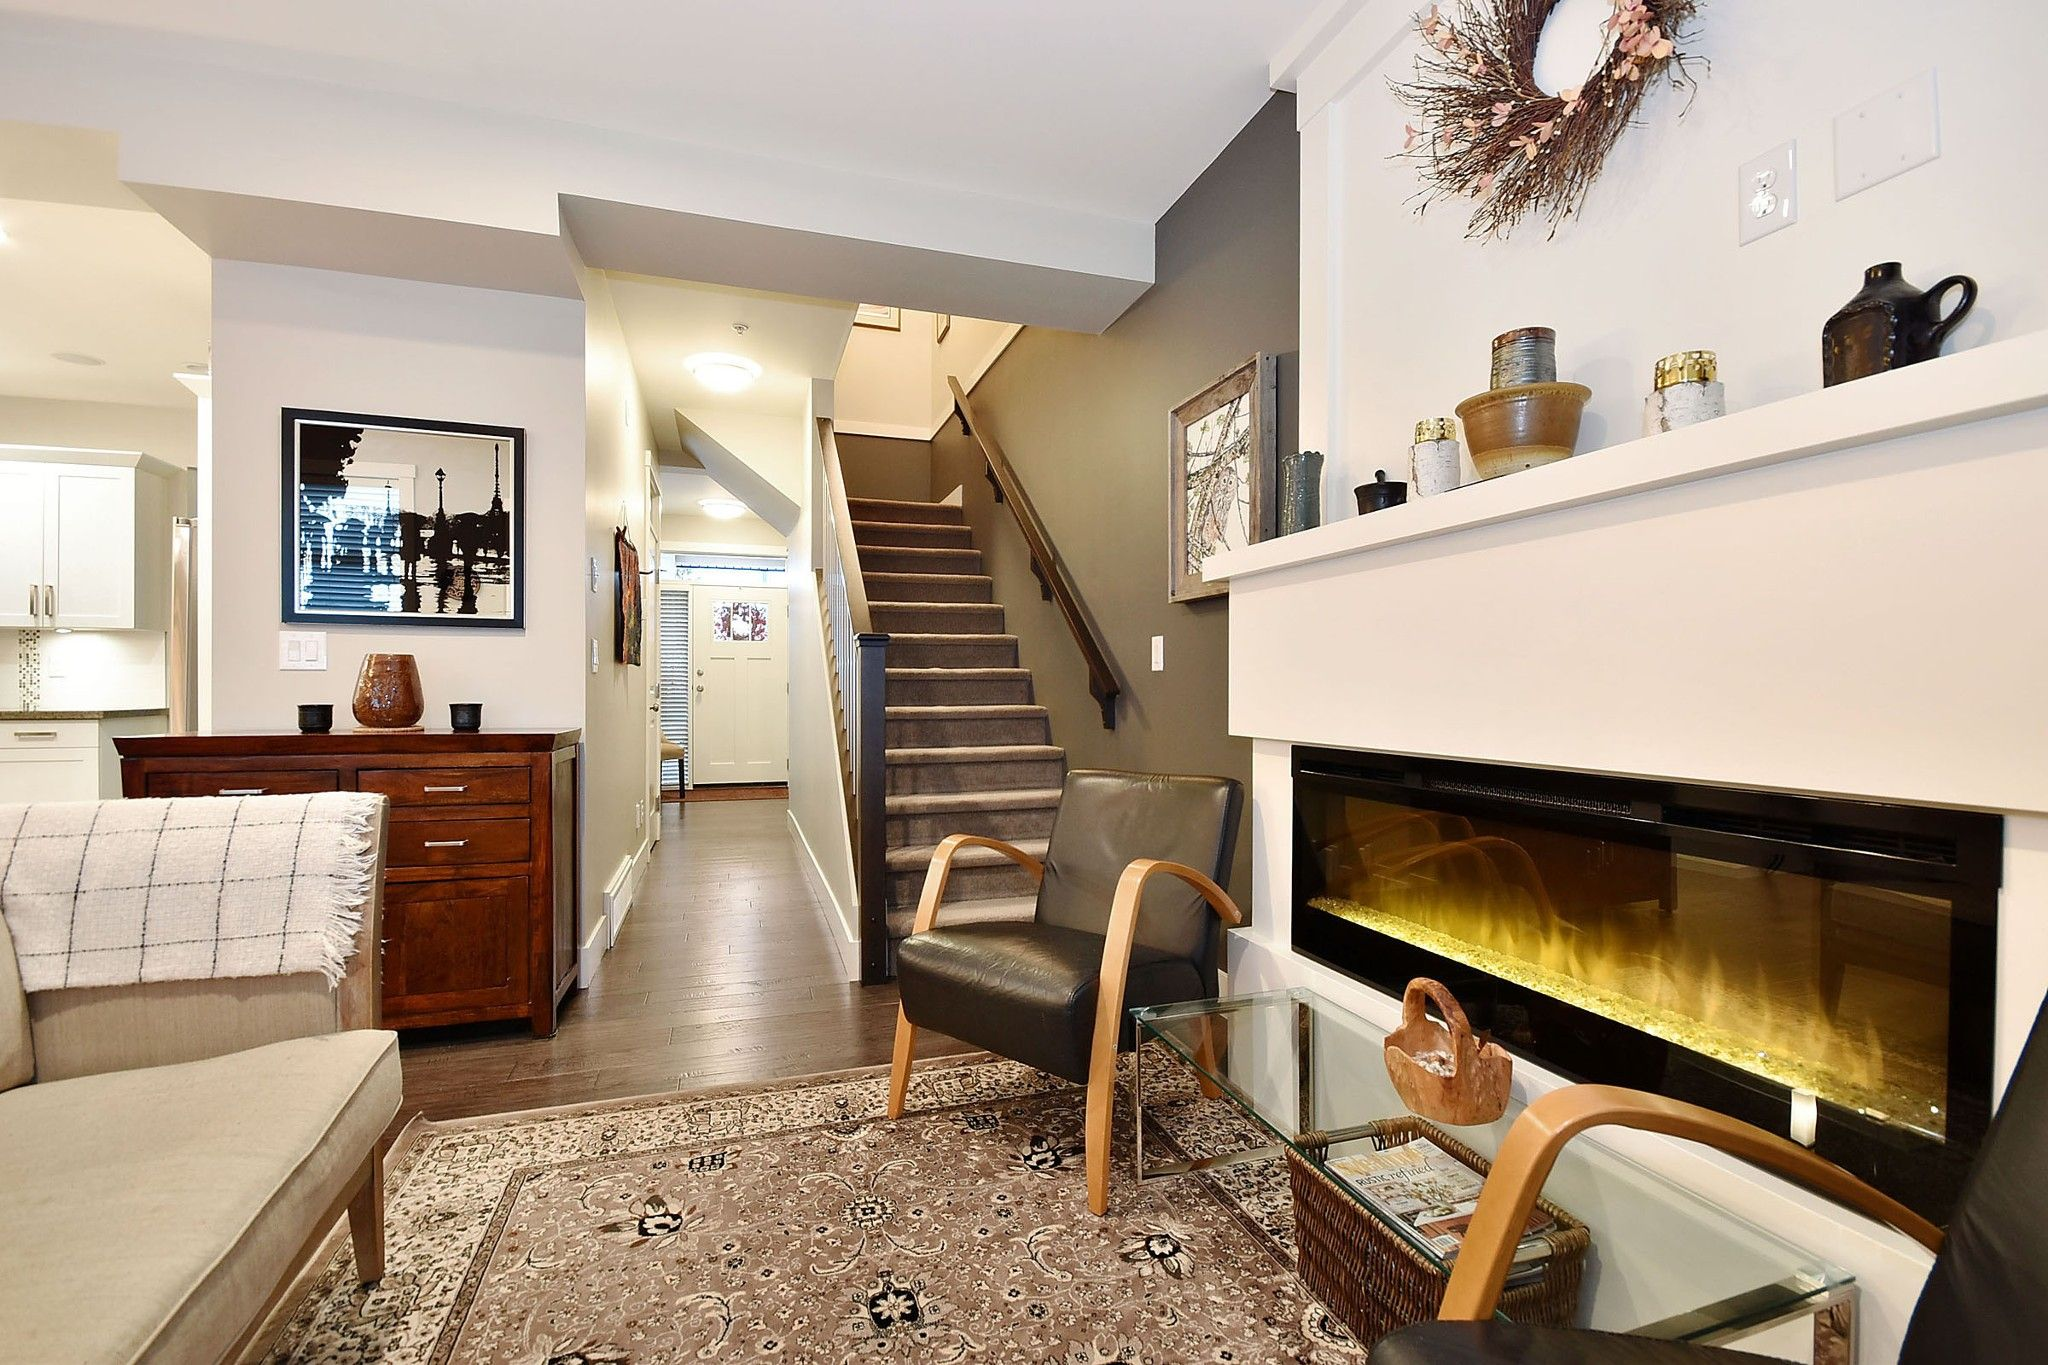 """Photo 10: Photos: 4 35298 MARSHALL Road in Abbotsford: Abbotsford East Townhouse for sale in """"Eagles Gate"""" : MLS®# R2434344"""